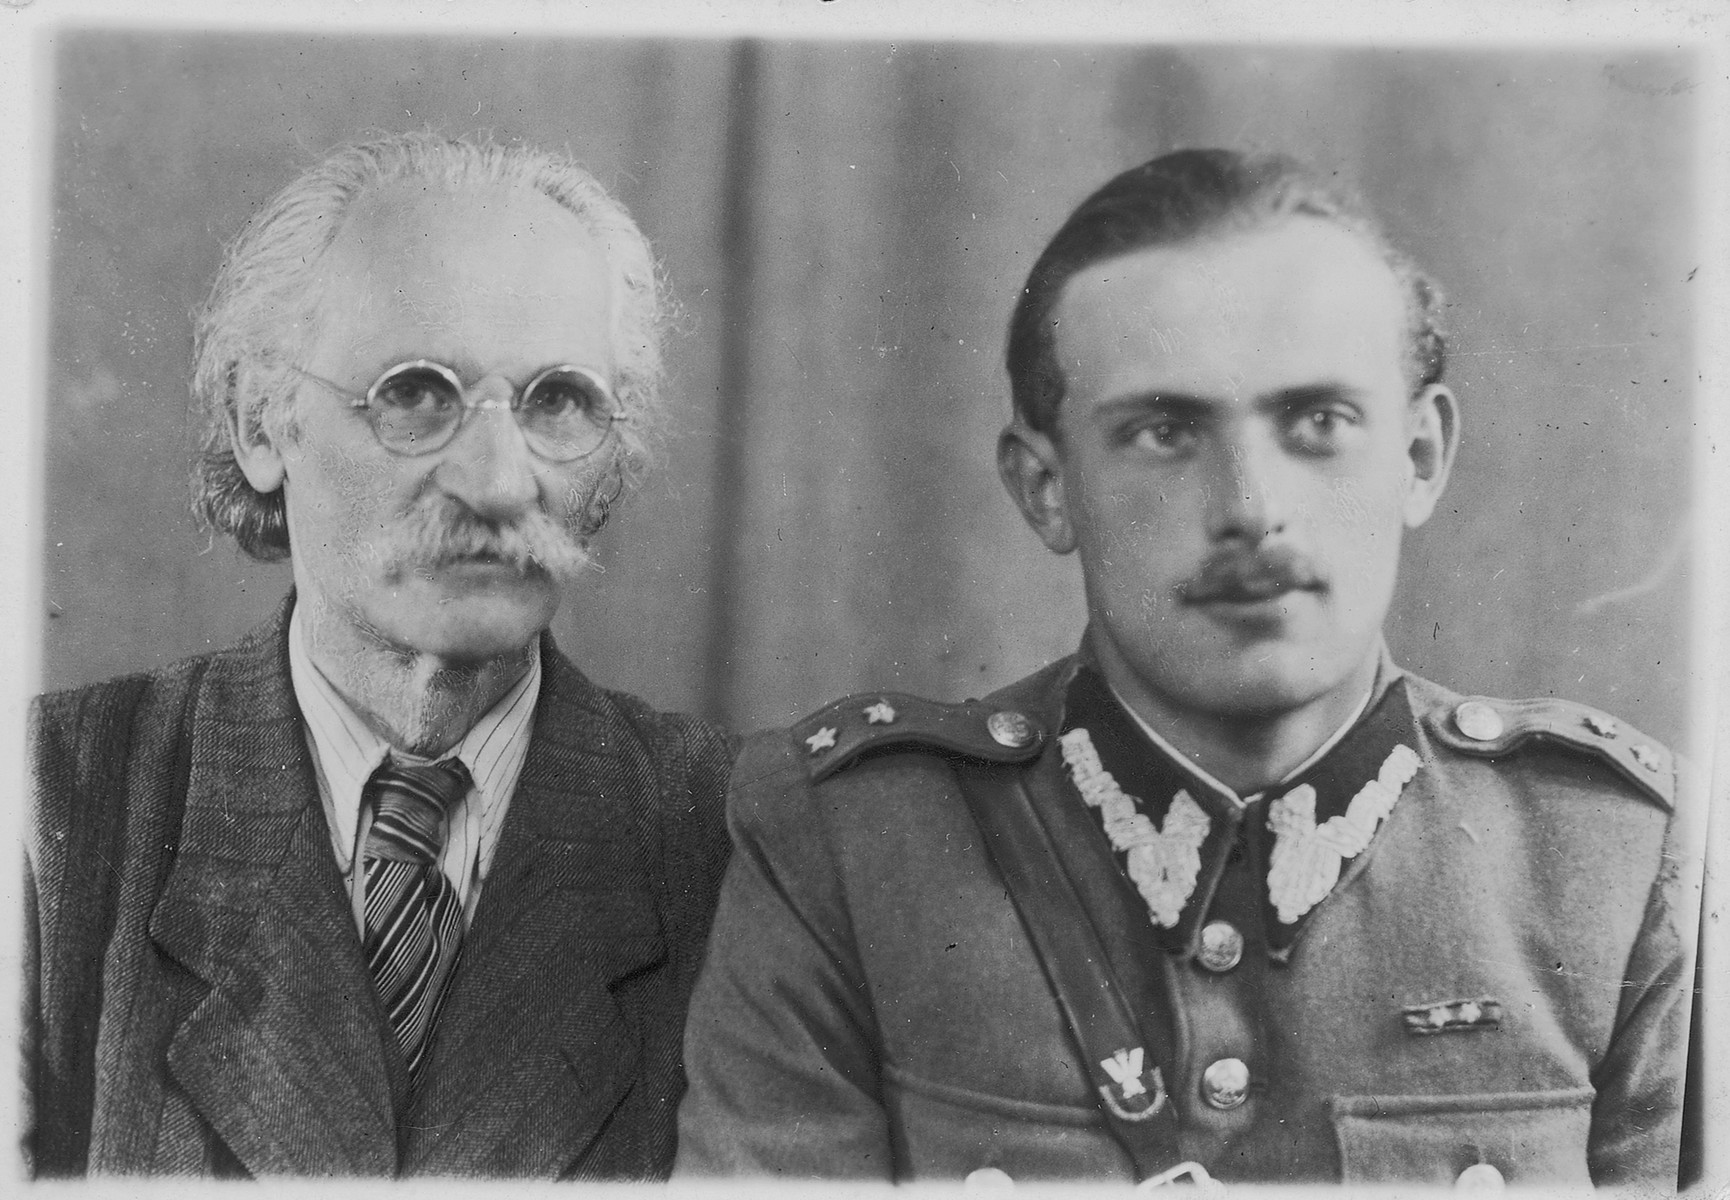 Studio portrait Perec Willenberg and his son Shmuel, a survivor of the Treblinka uprising and officer in the Polish army.